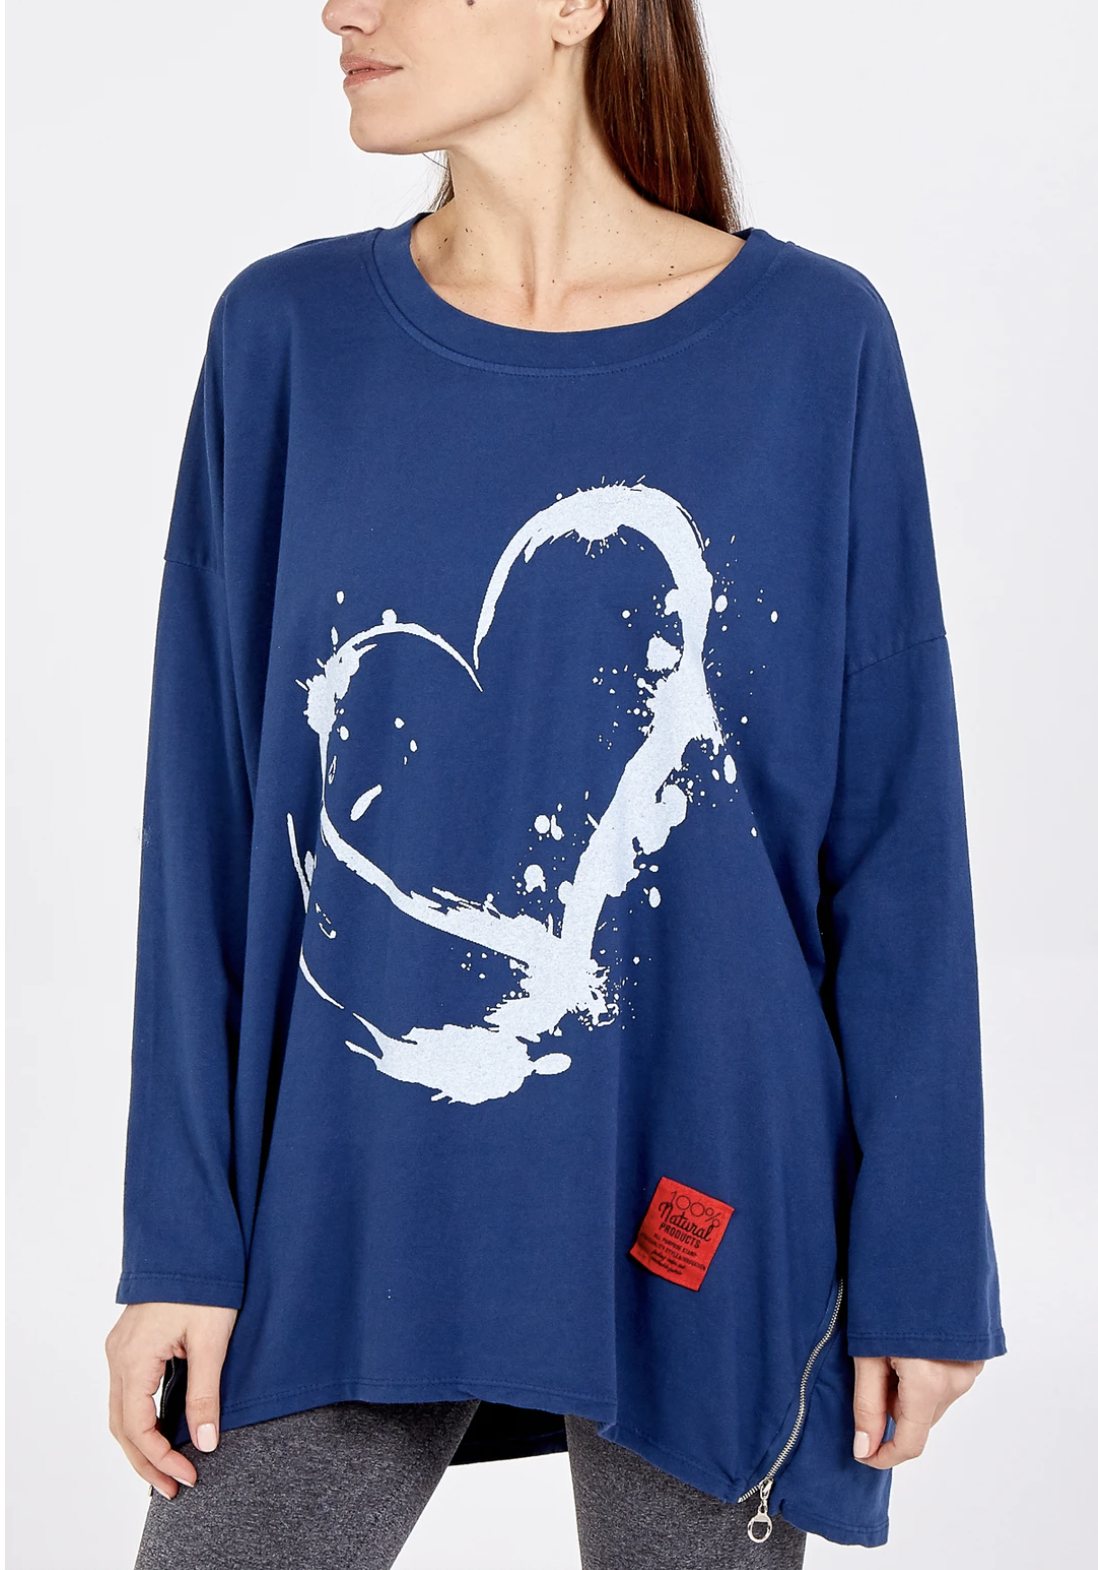 NV927 Heart Sweater with zip